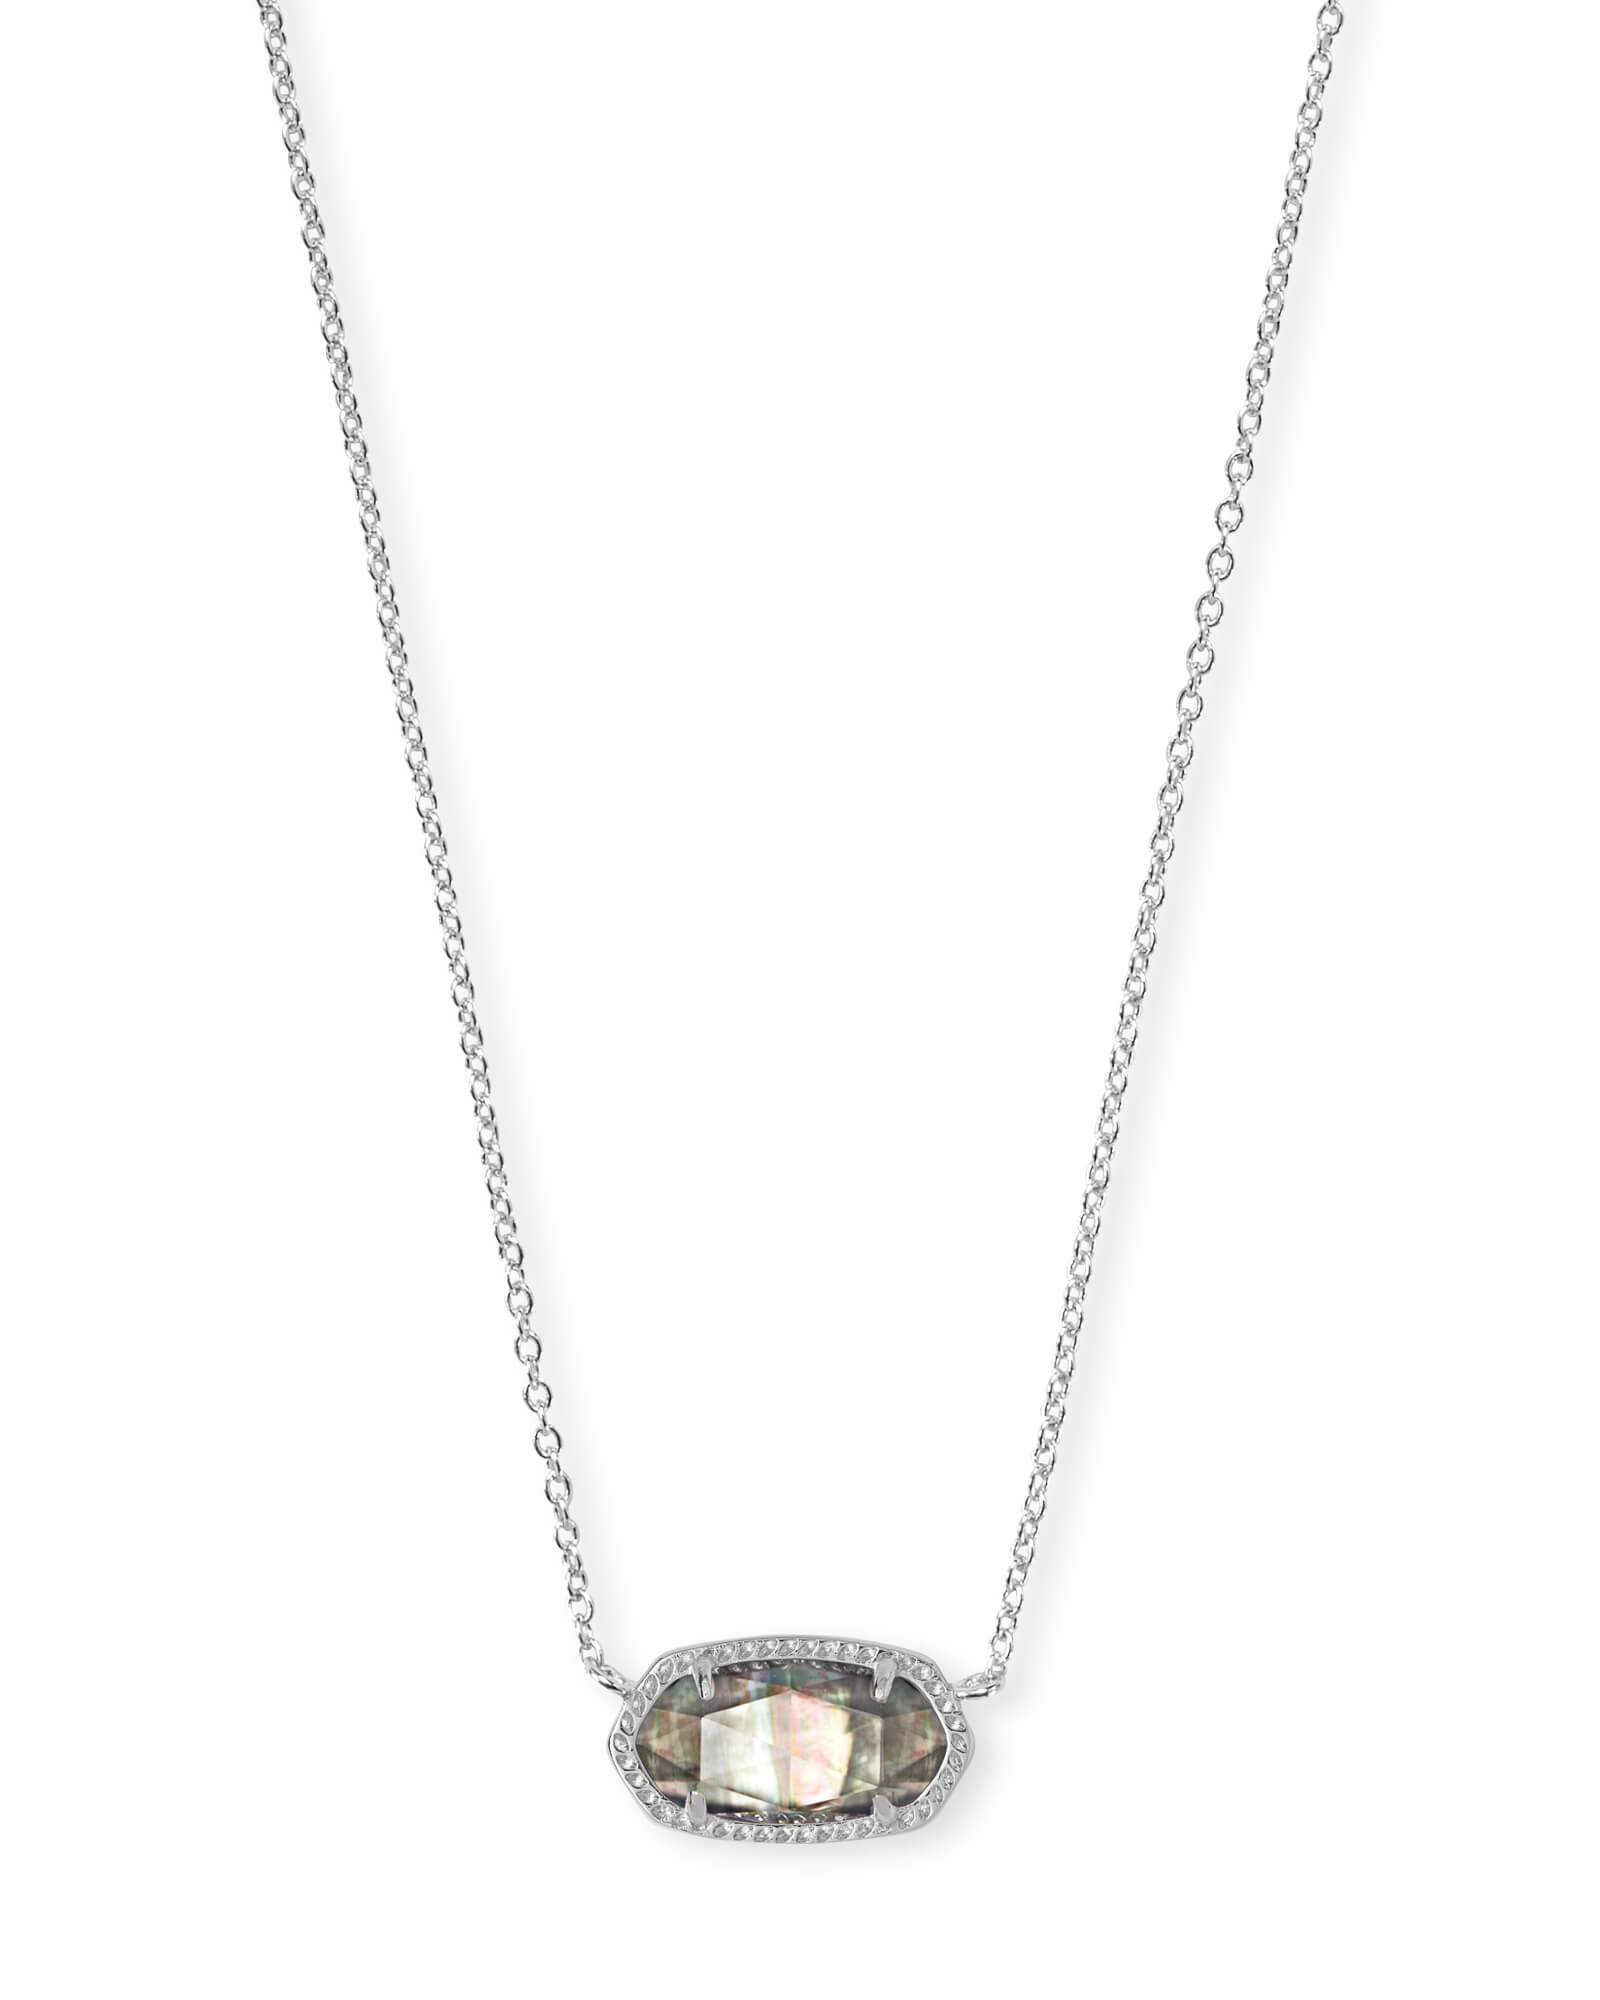 Elisa Bright Silver Pendant Necklace in Black Mother-of-Pearl